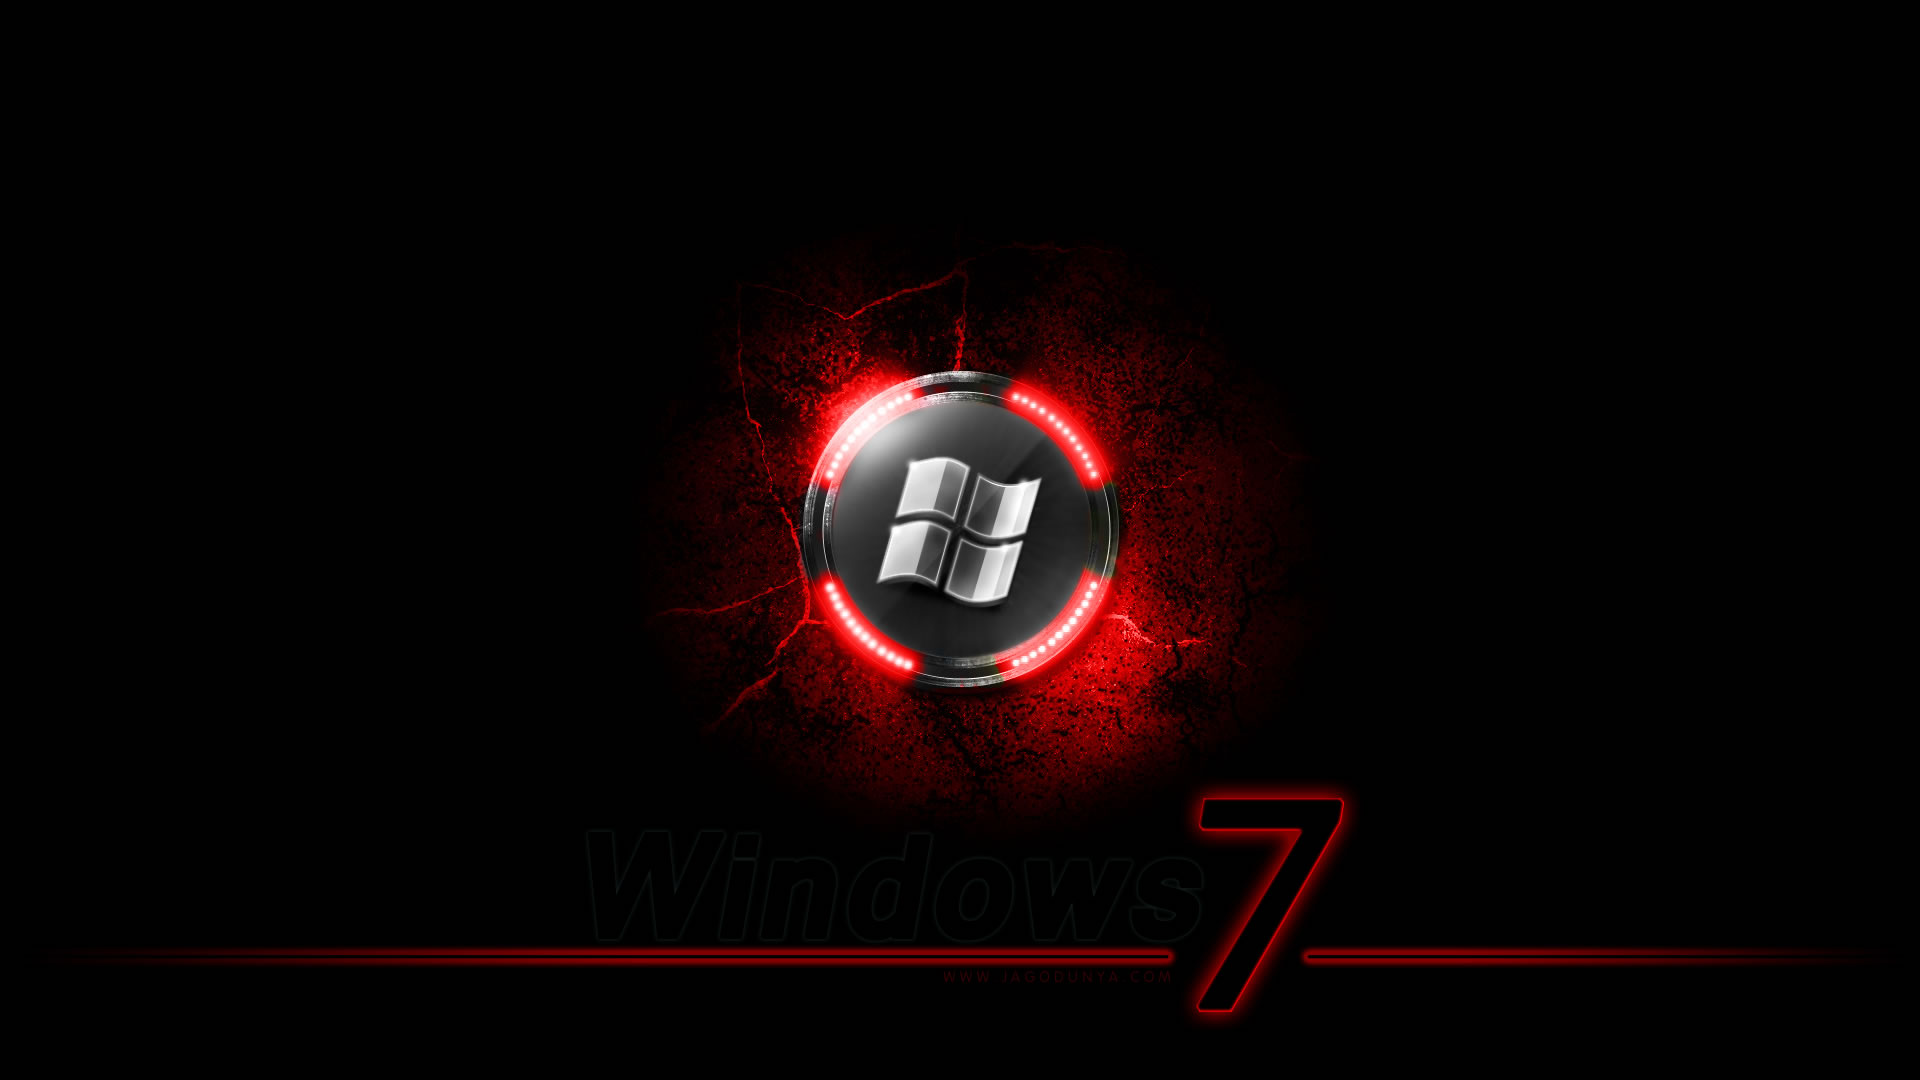 Black Windows 7 hd Wallpapers Full HD Wallpapers Points 1920x1080